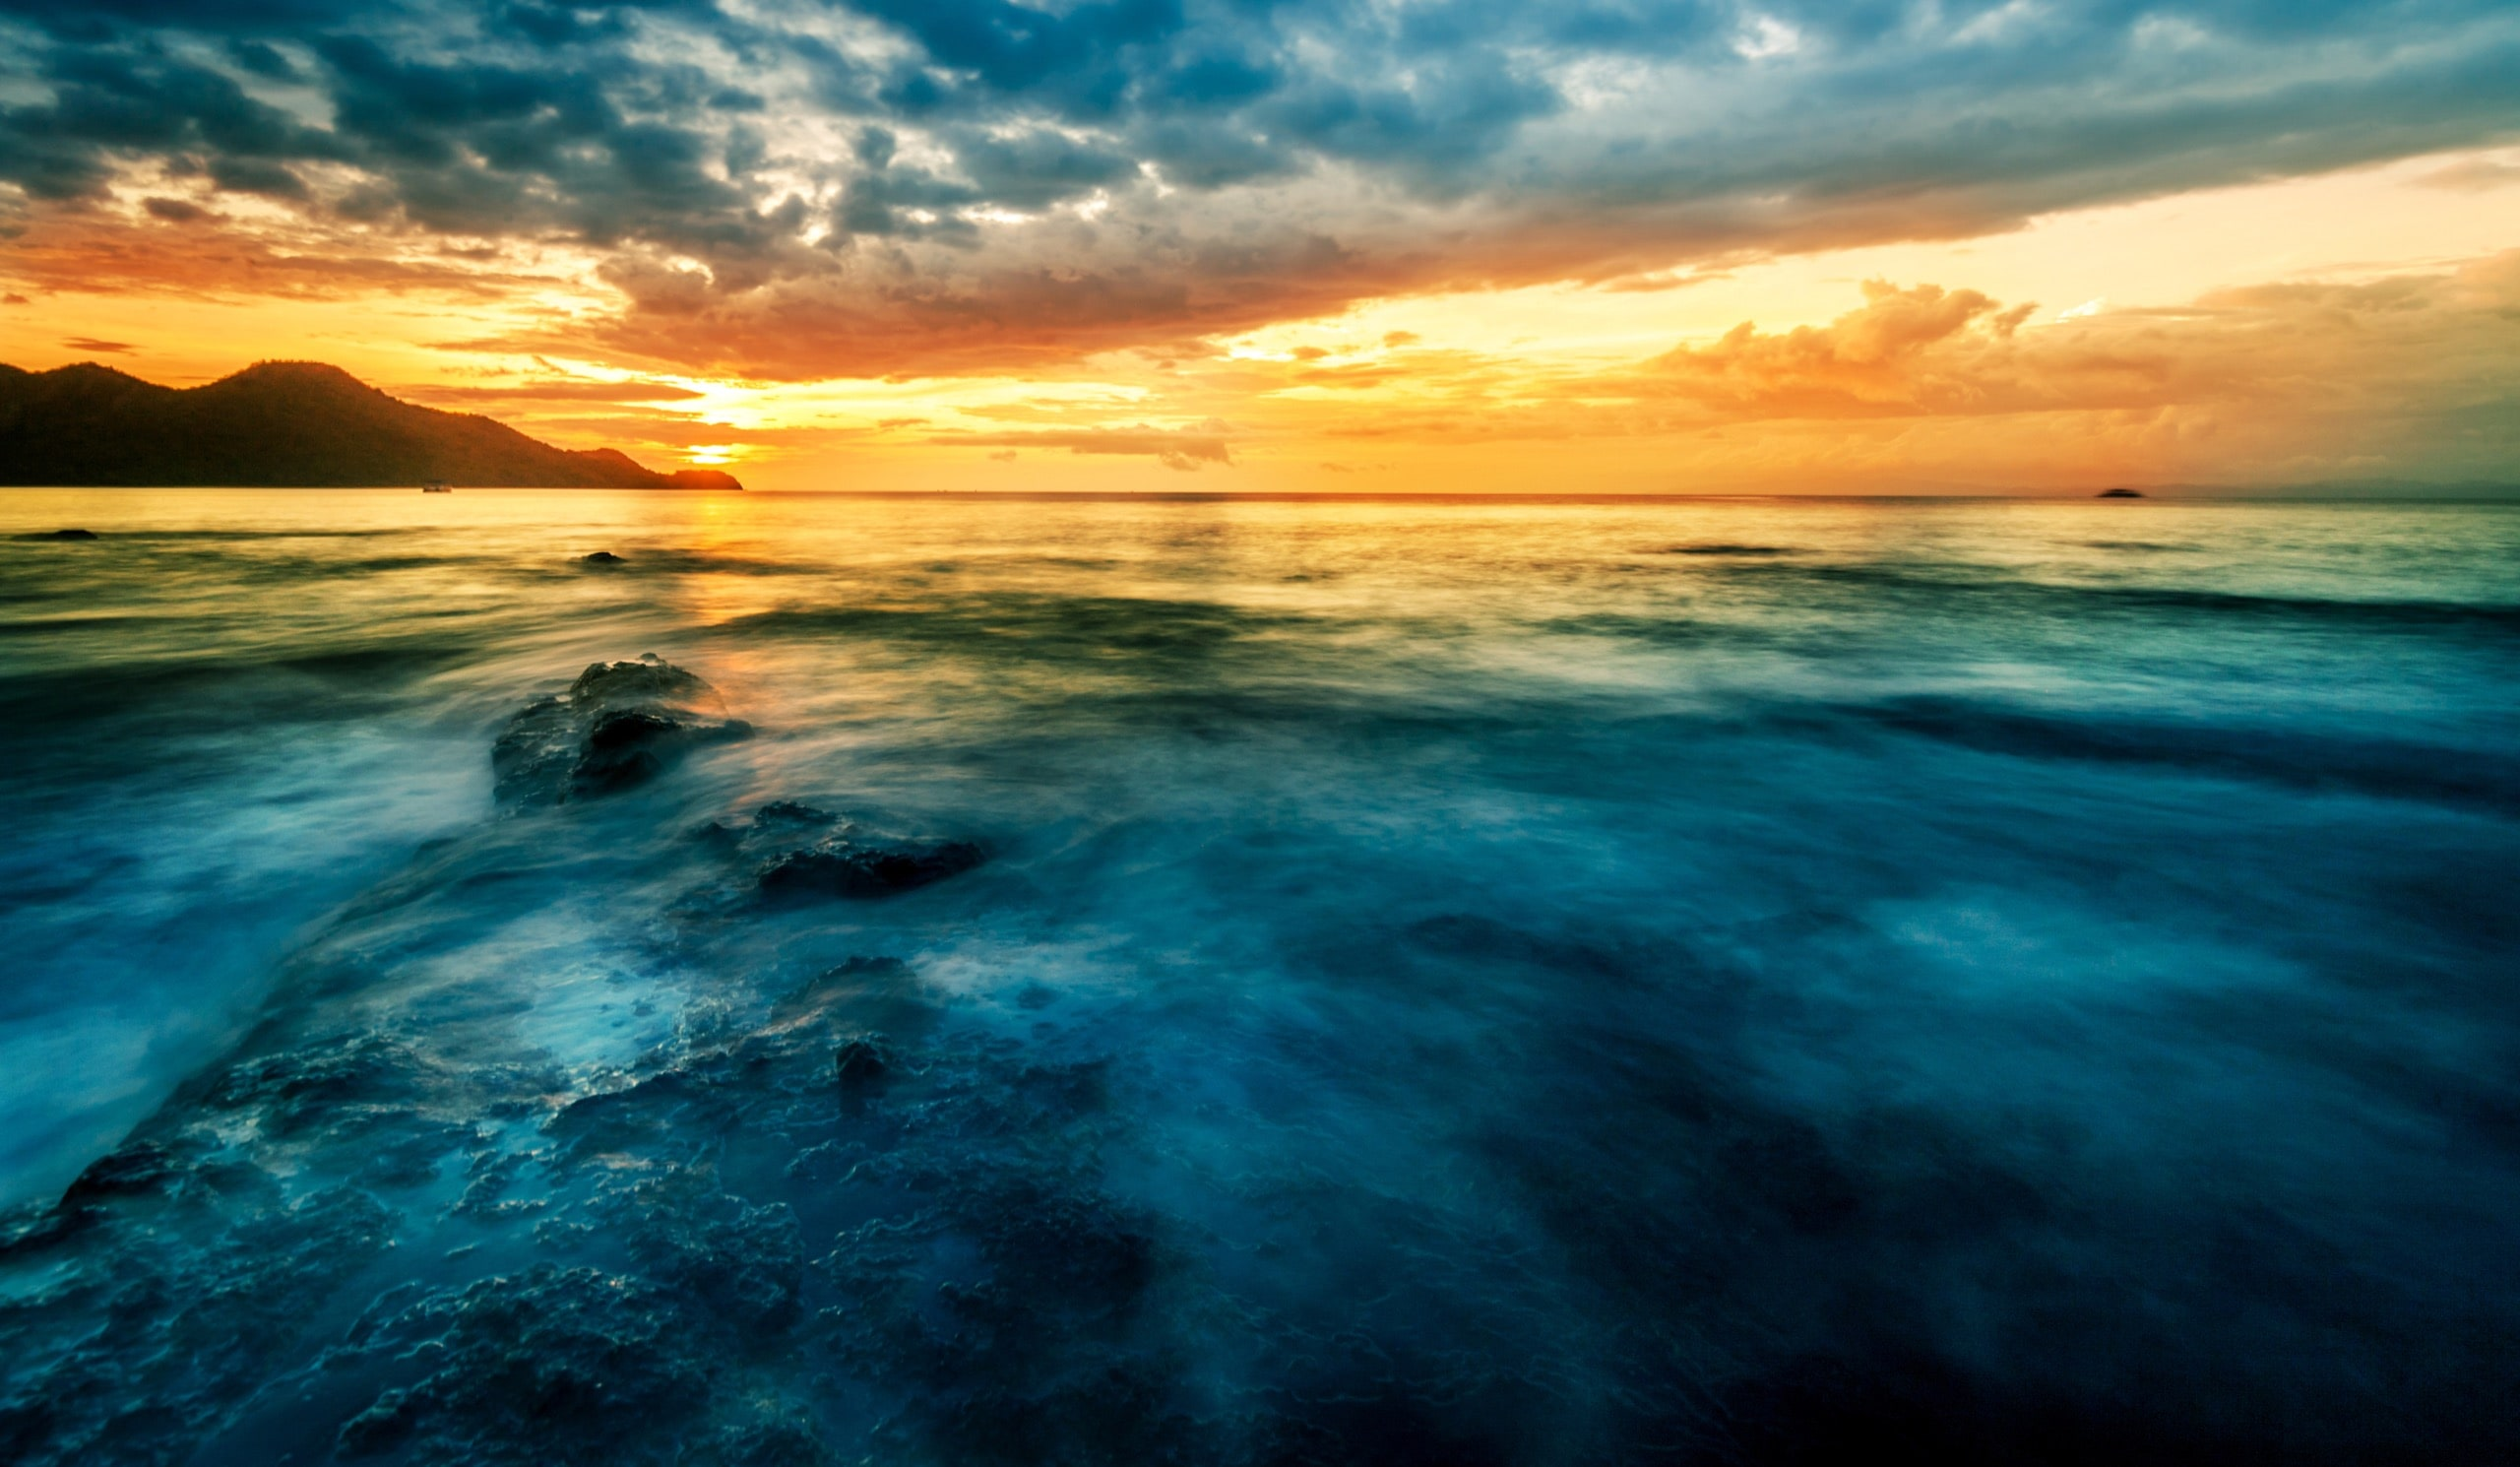 Pacific Sunset. Guanacaste beach, Costa Rica. Travel concept